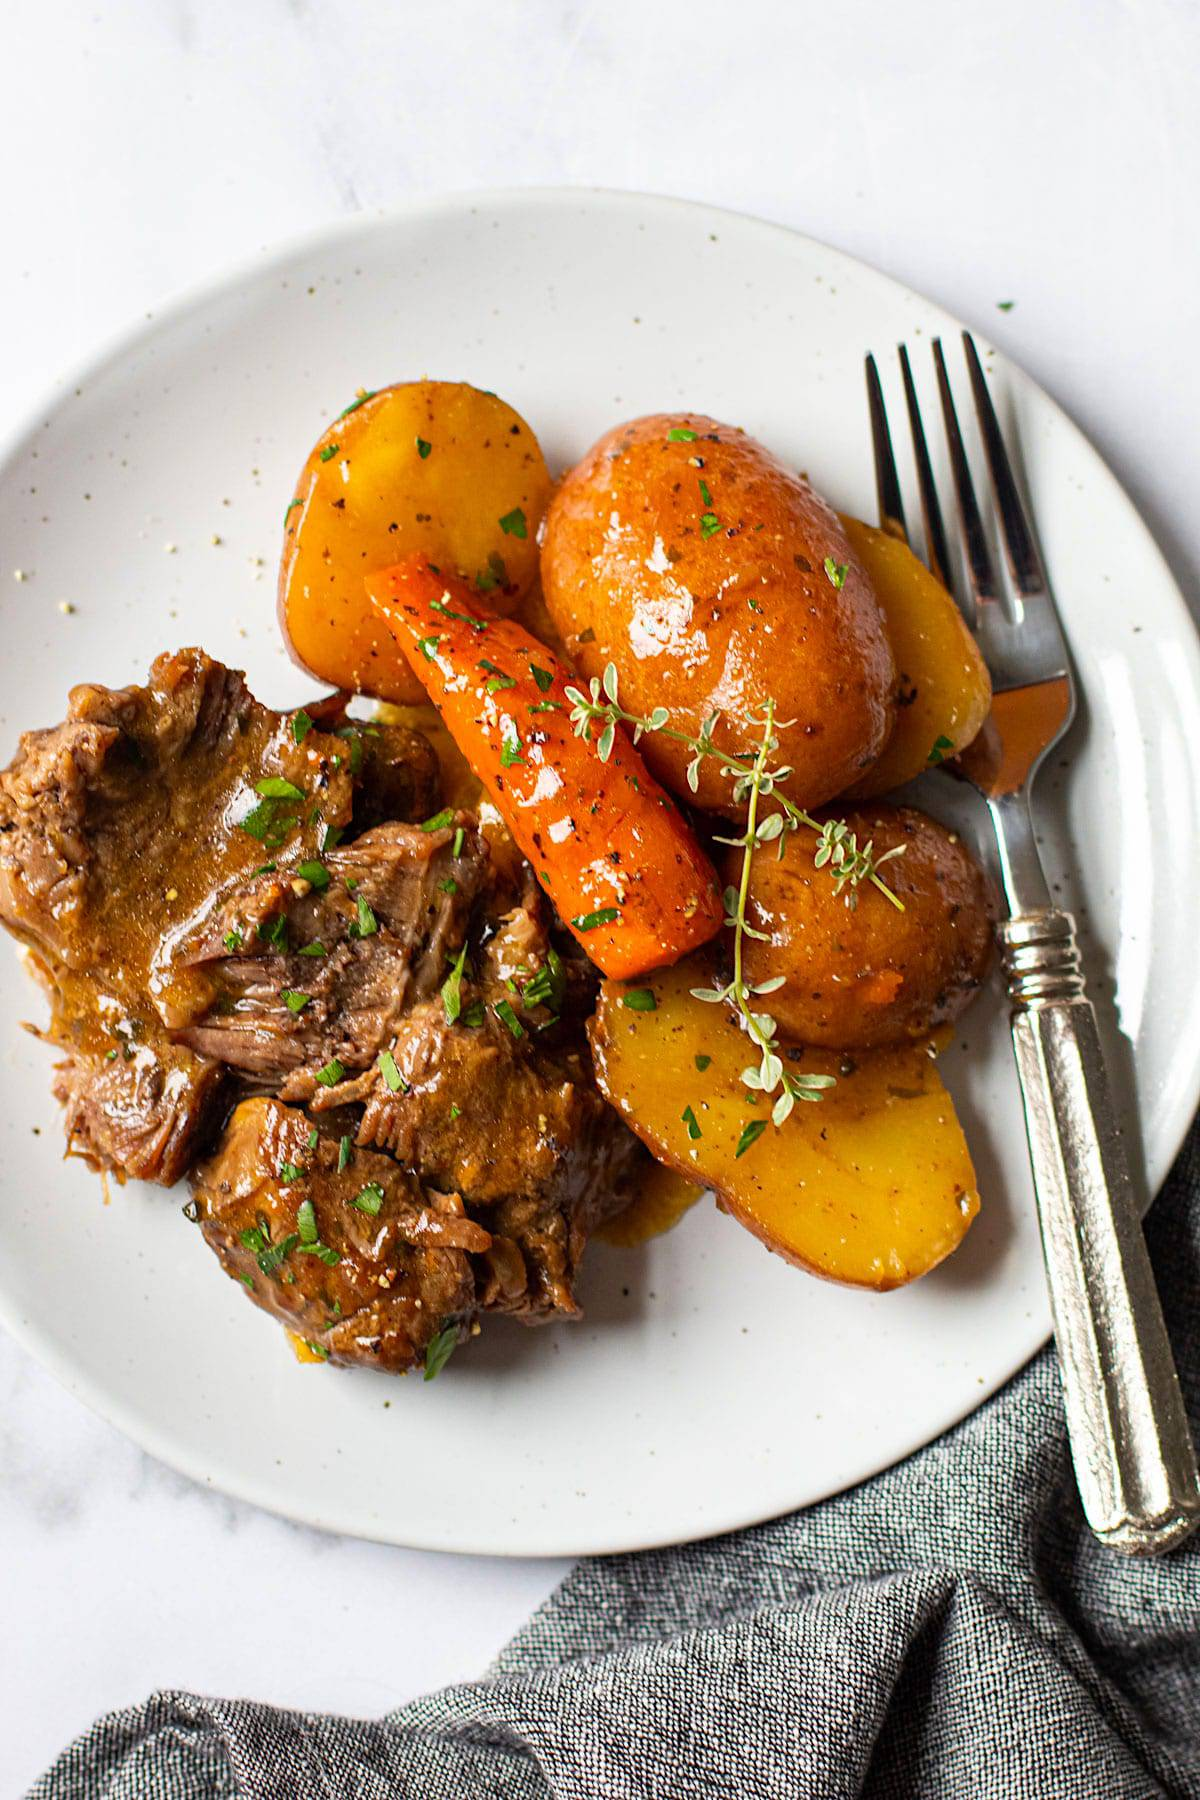 A plate of tender instant pot pot roast with carrots and potatoes.